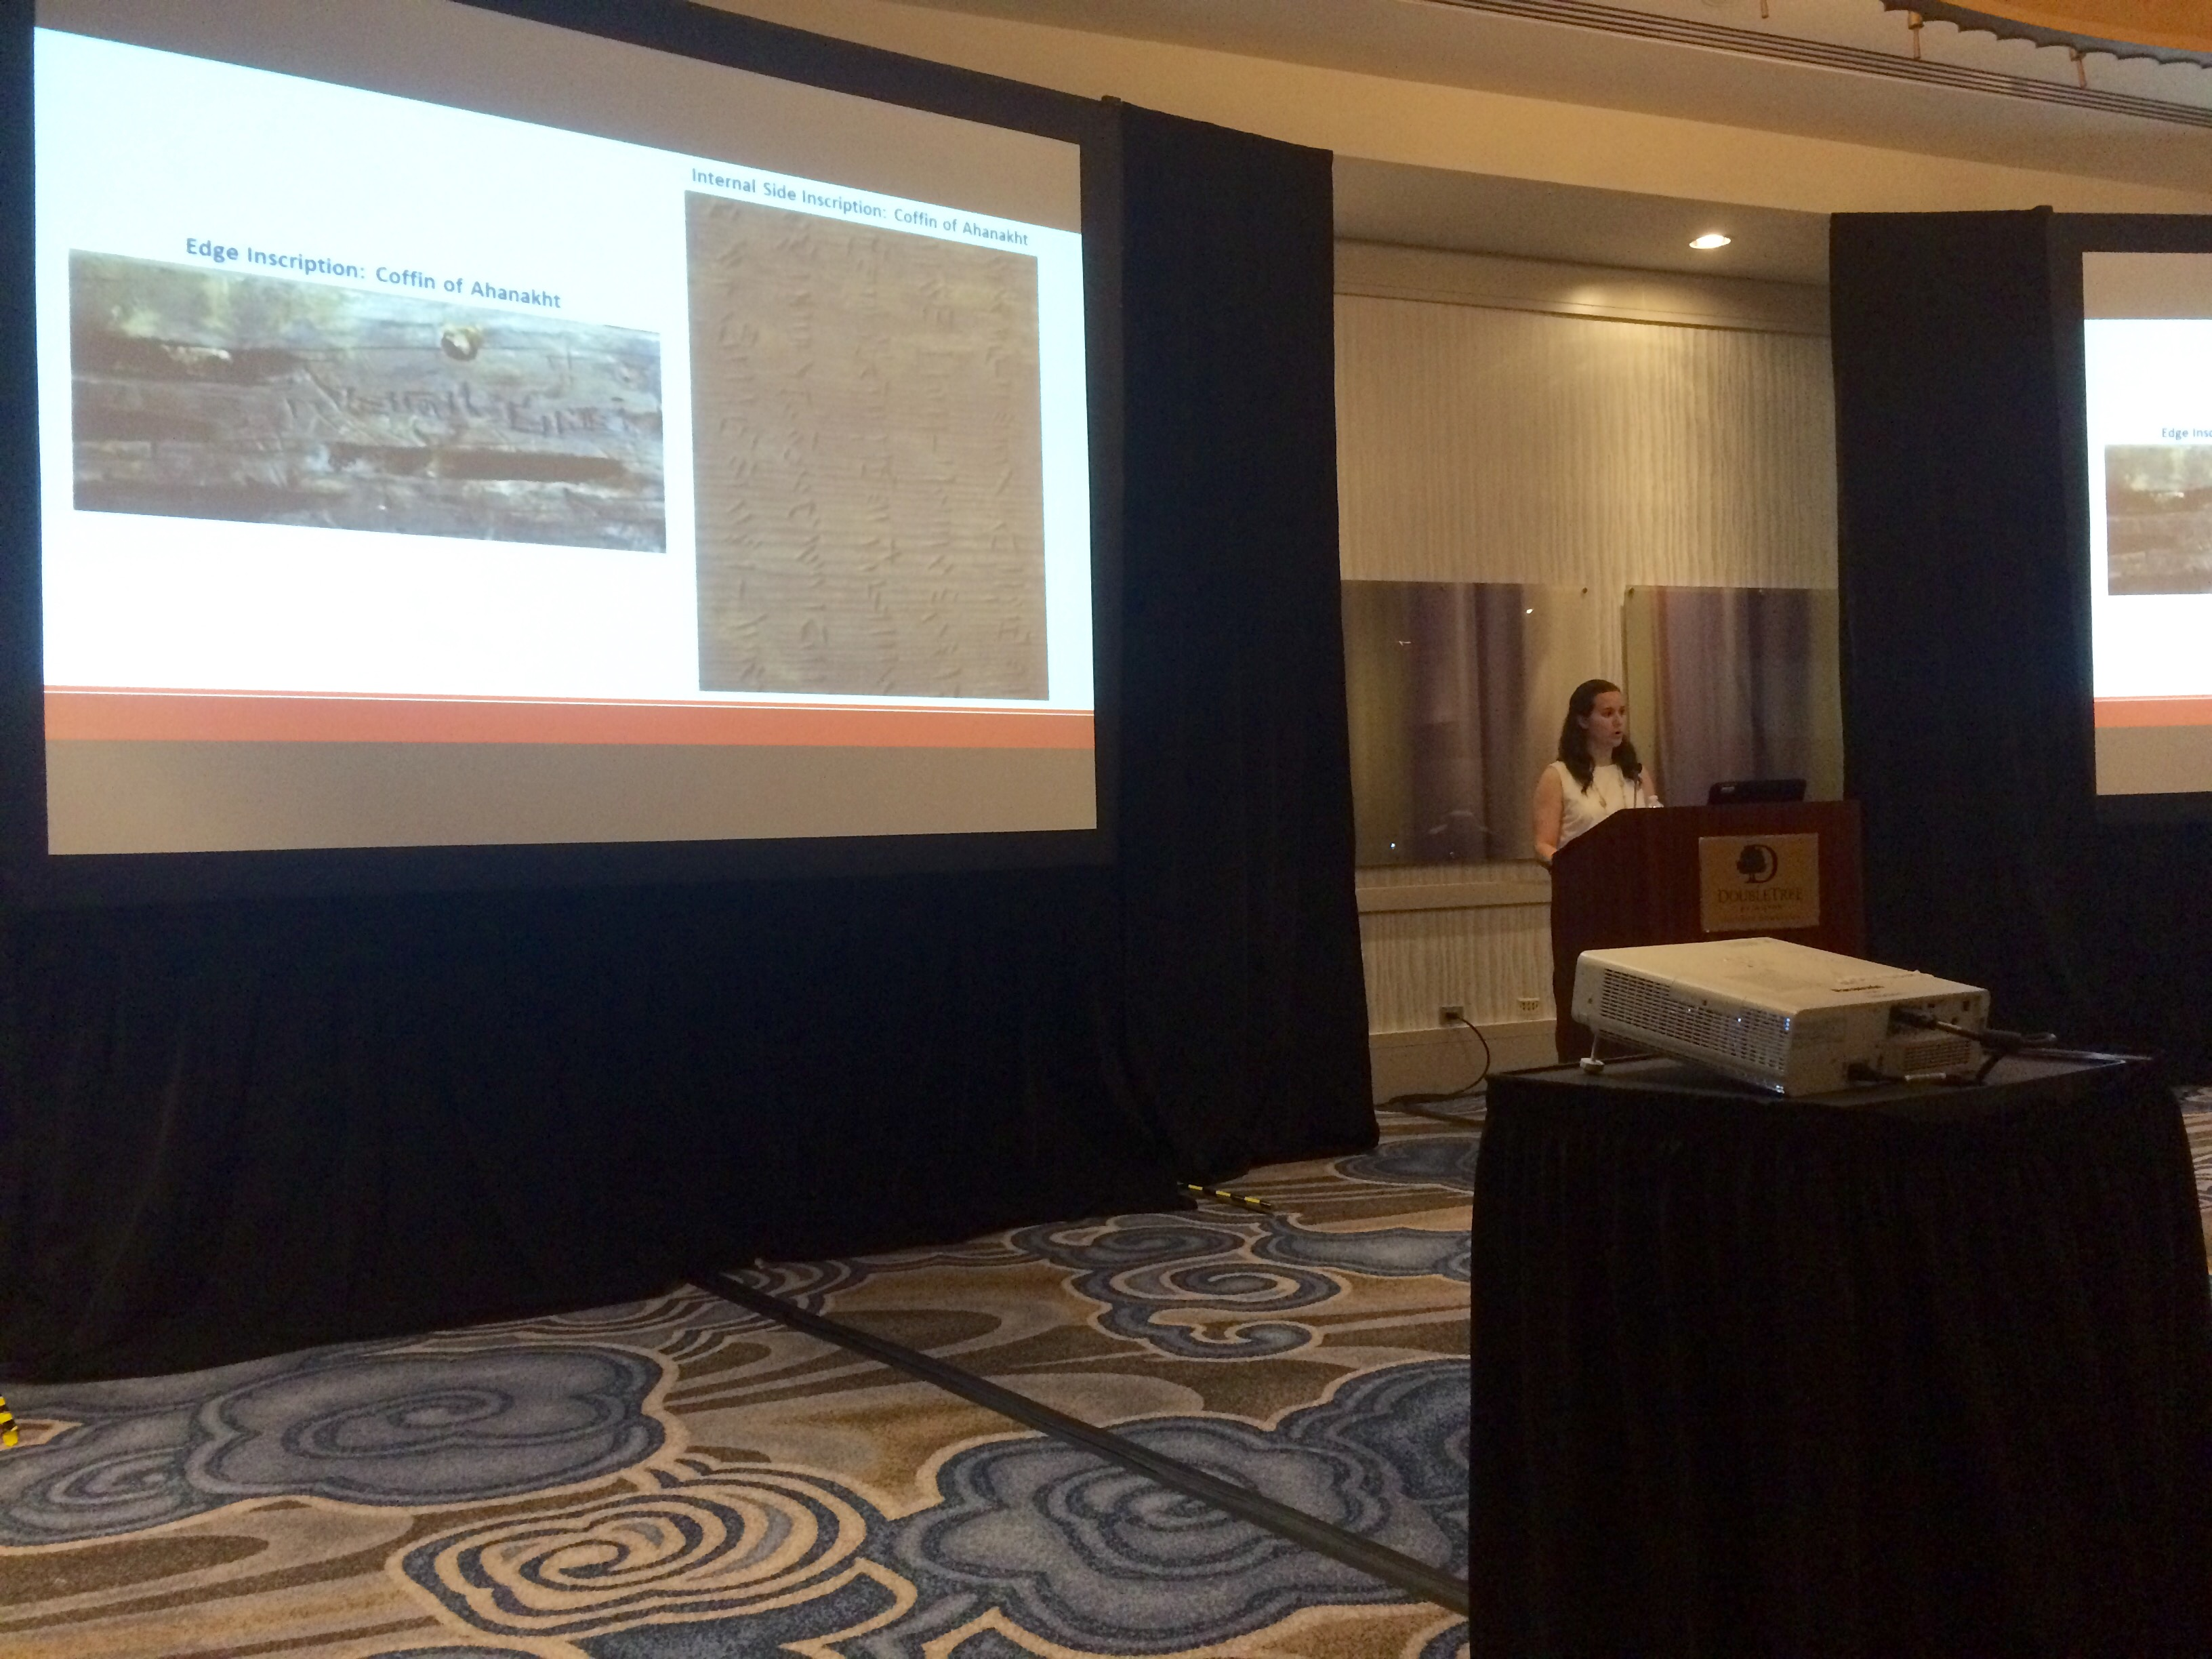 Leah Humphrey, presenting at the ARCE annual meeting